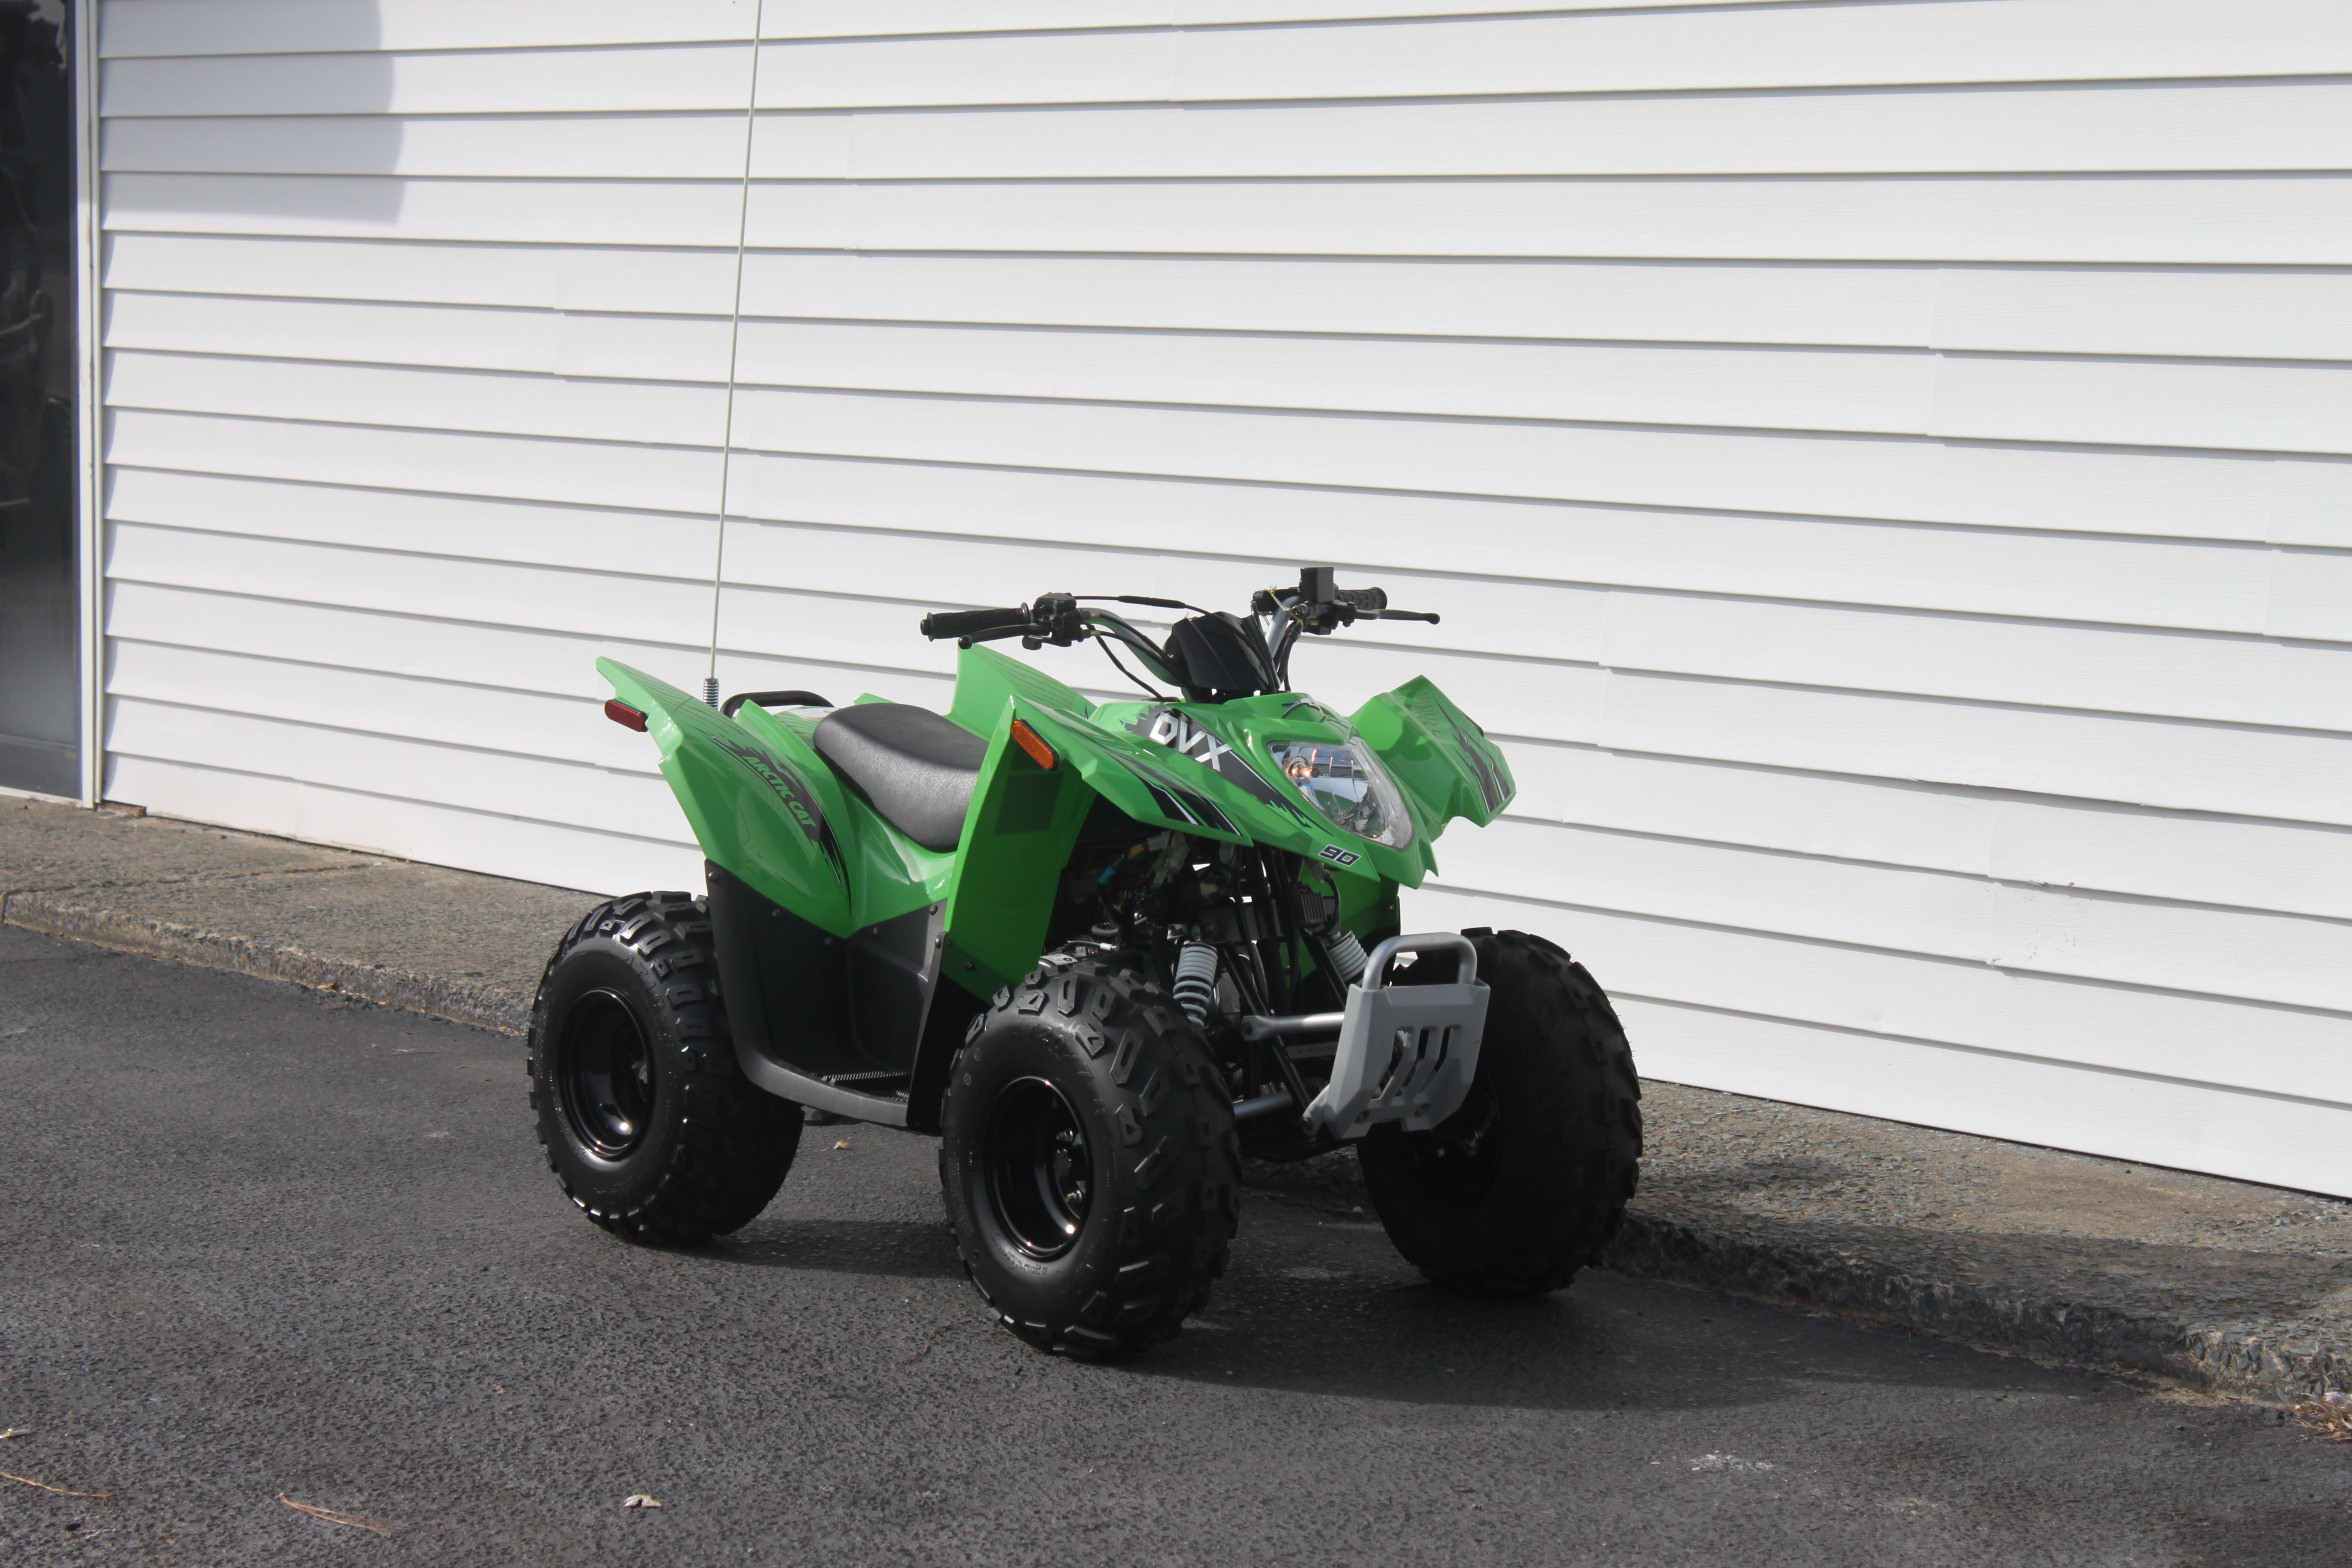 STOCK# DVX90LIME, 2017 ARCTICCAT DVX 90 ATV